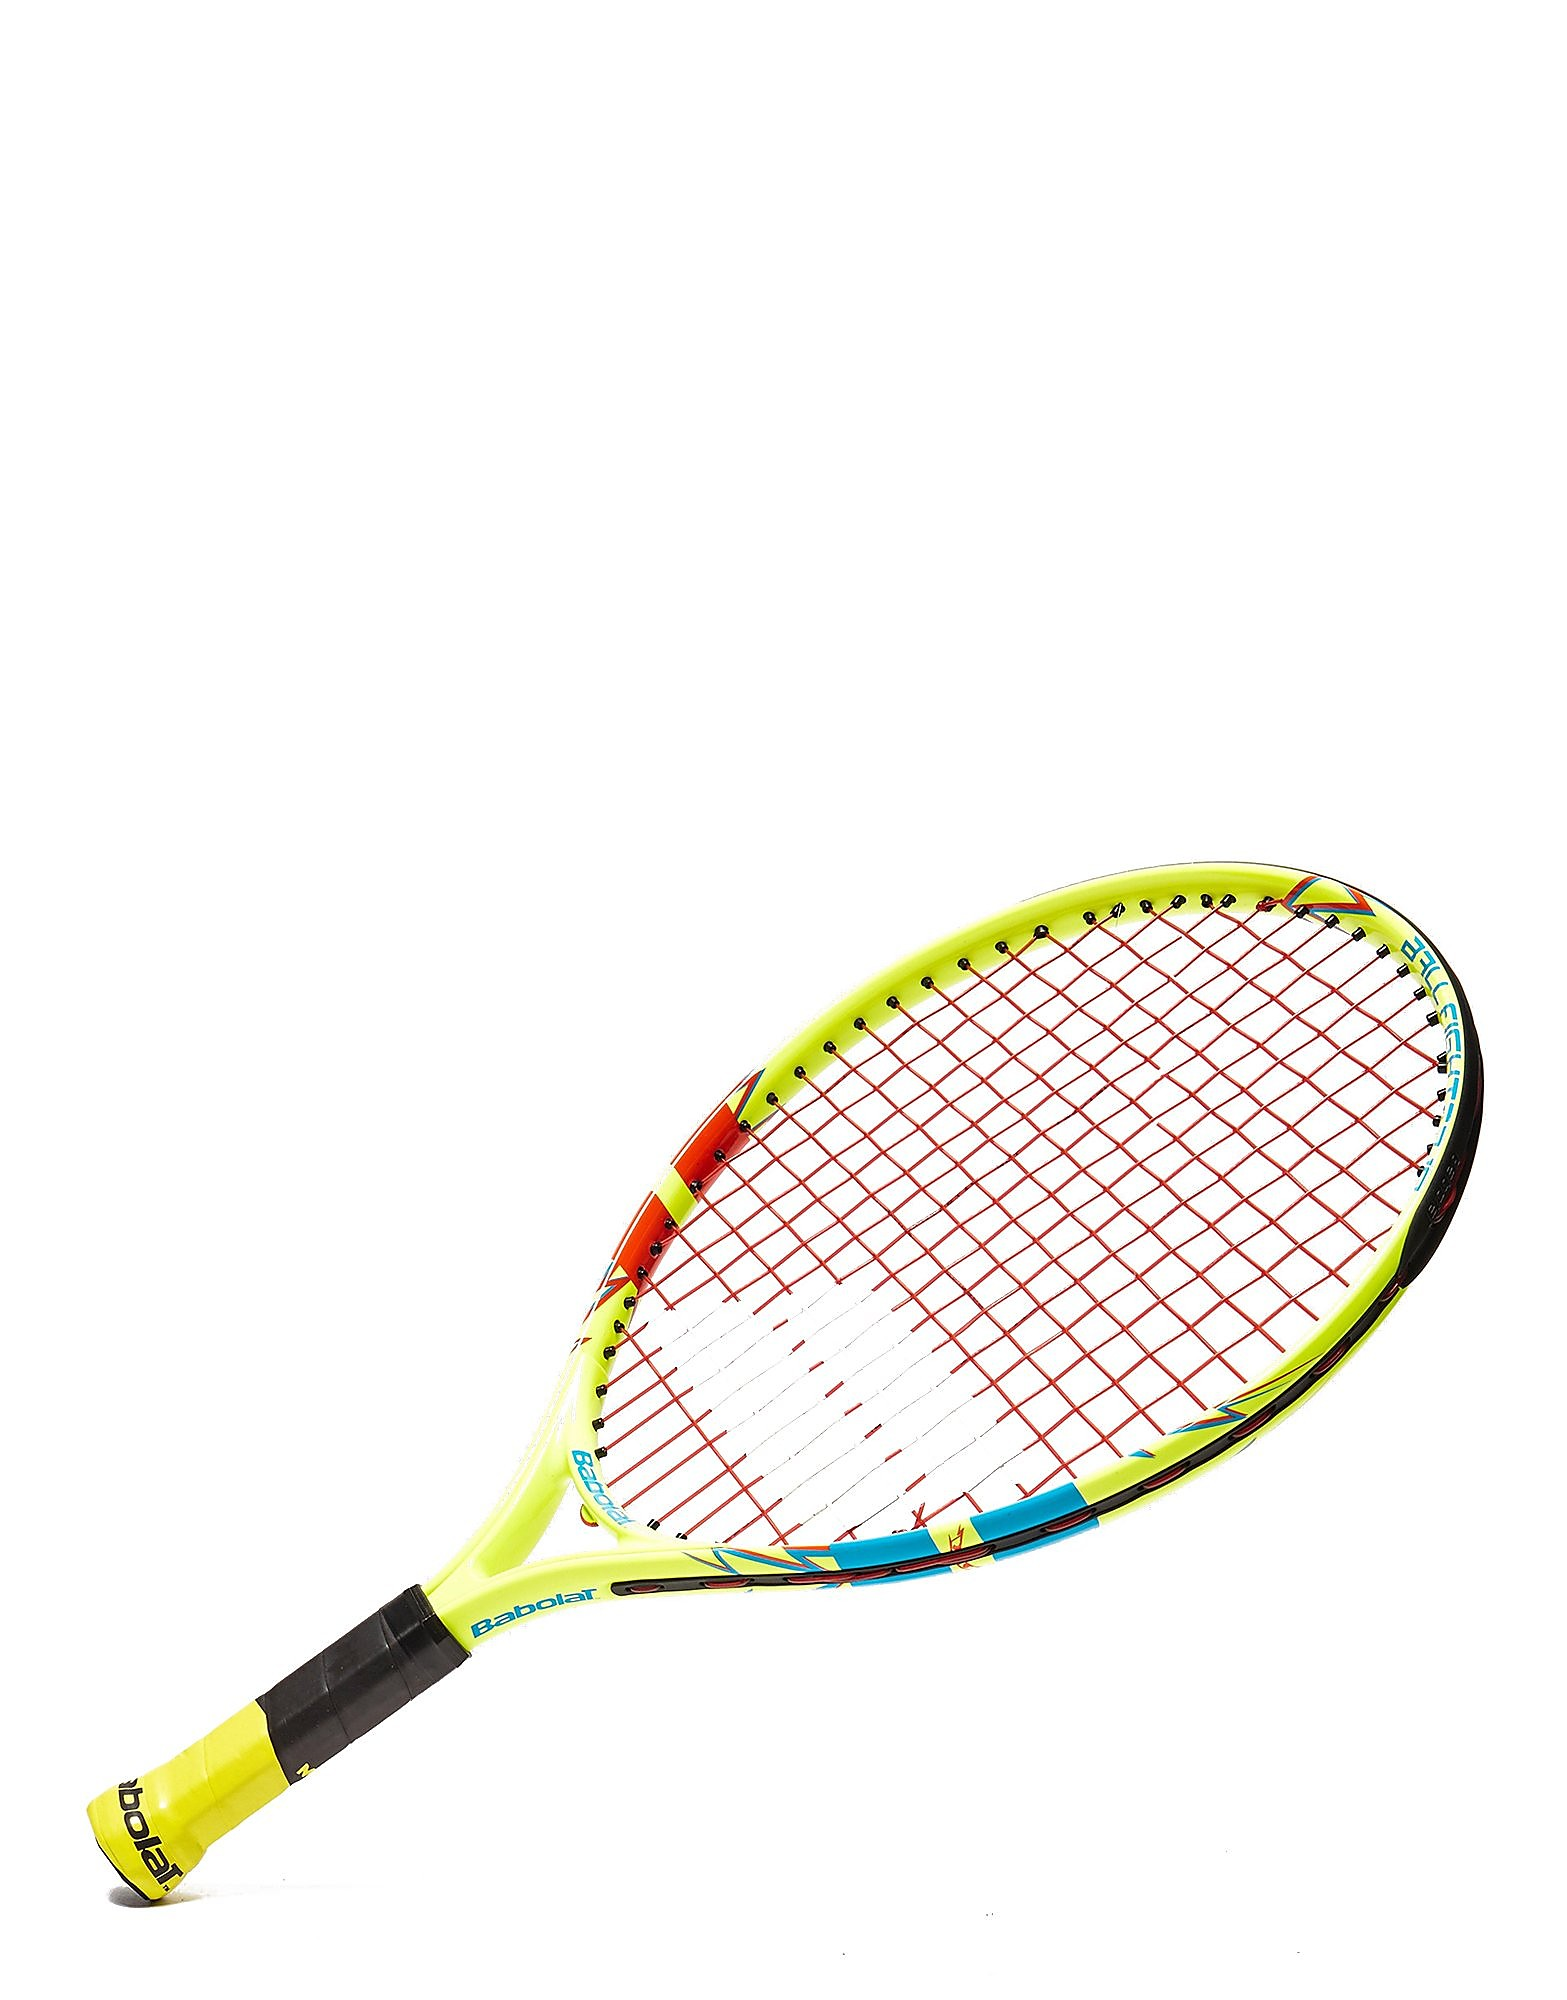 Babolat Ballfighter 19 Tennis Racket Junior